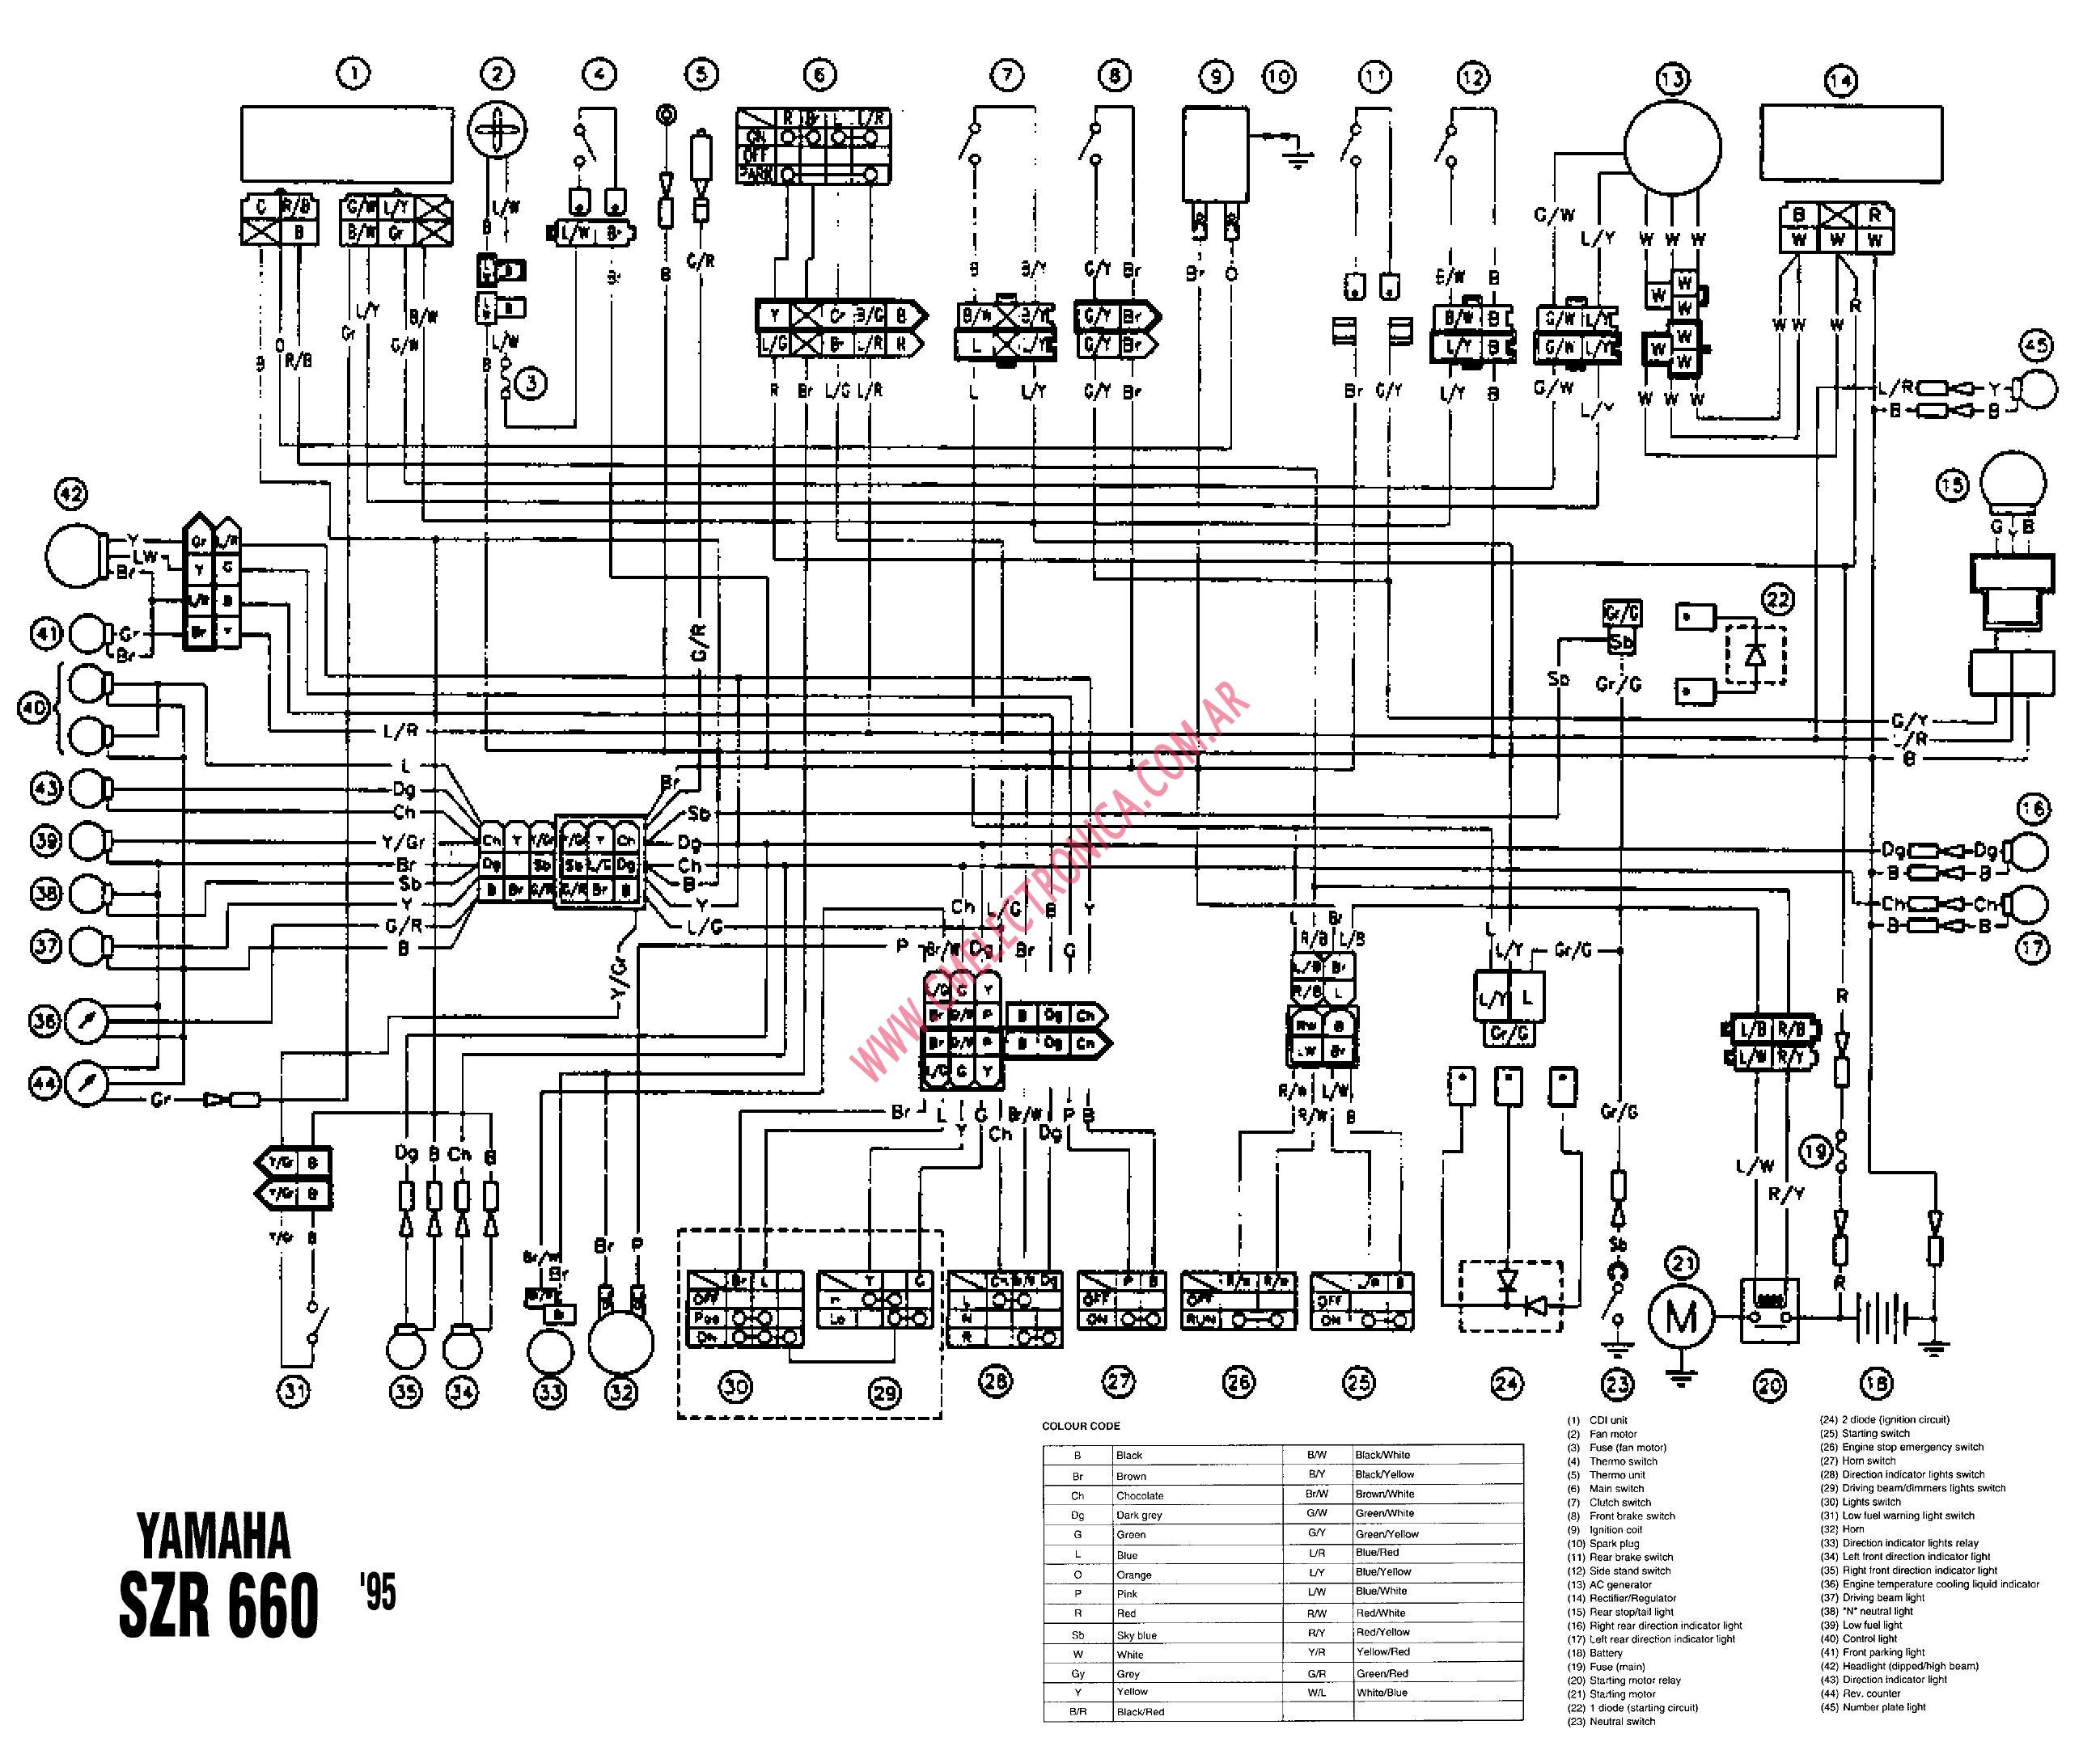 wiring diagram for yamaha raptor  u2022 wiring diagram for free